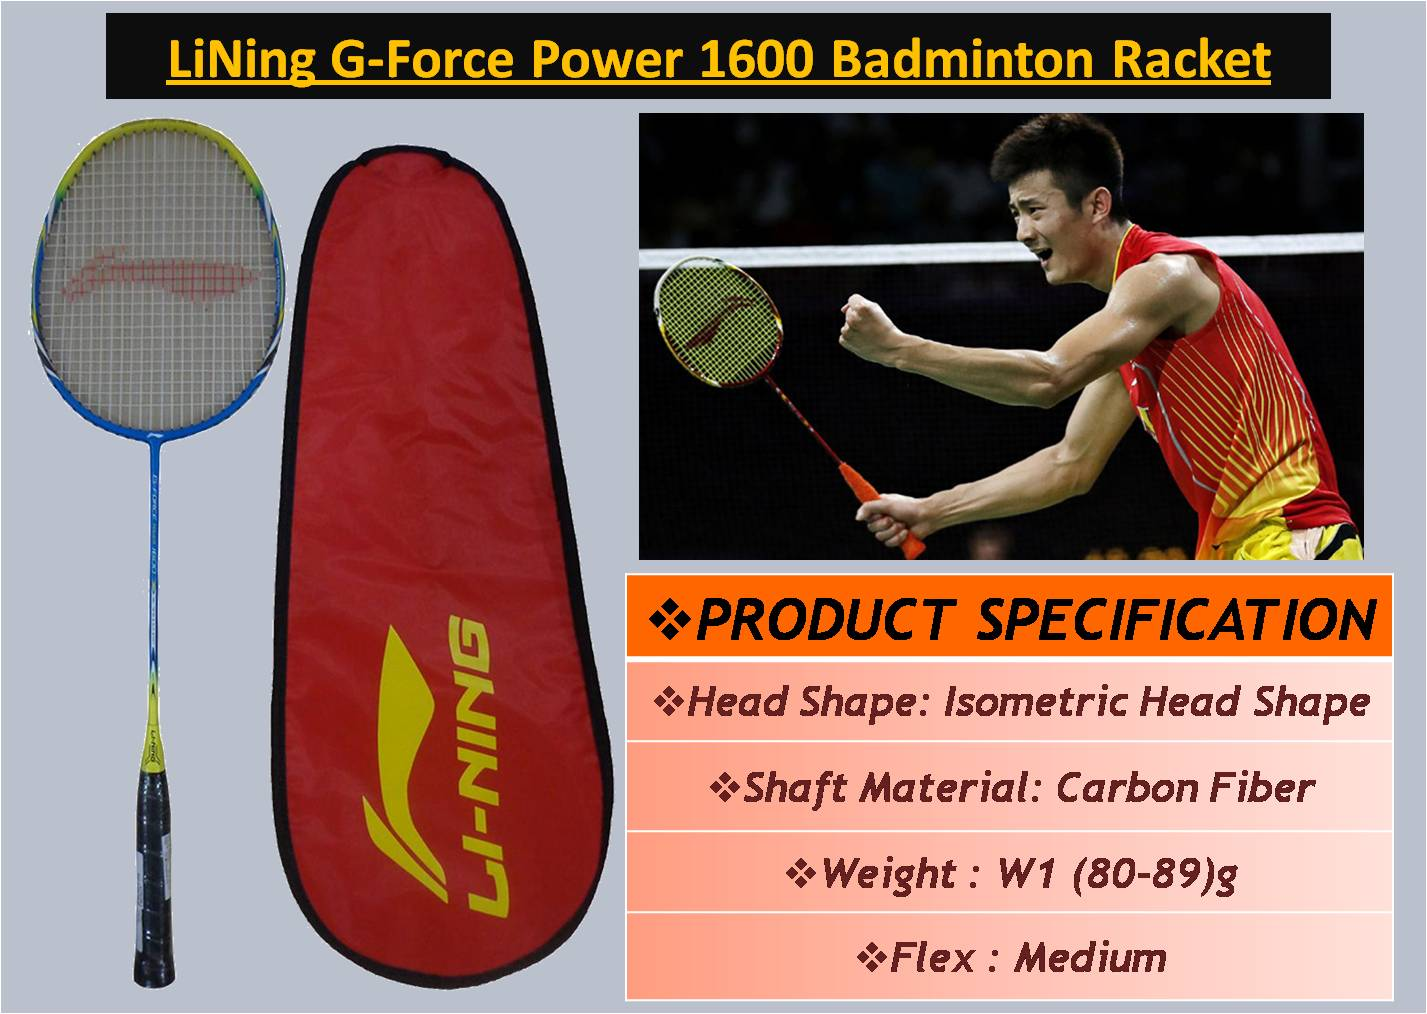 LiNing G-Force Power 1600 Badminton Racket